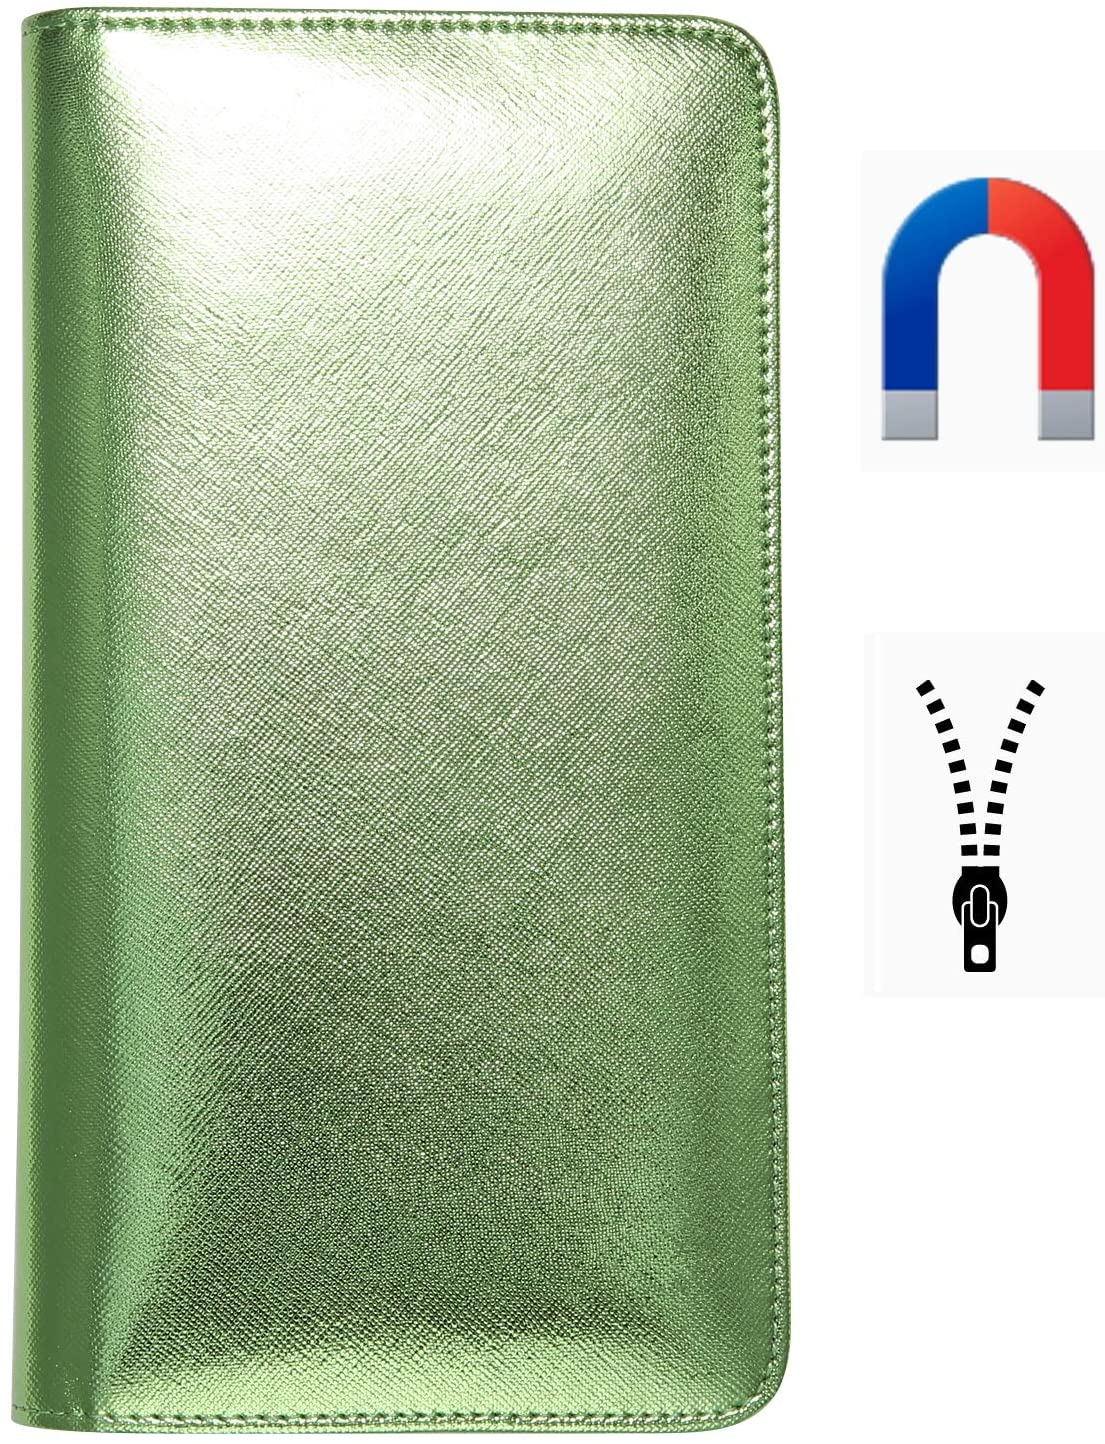 Server Book for Waitress Book with Magnetic Closure Server Wallet with Money Pocket and Zipper Pouch Restaurant Waitstaff Organizer, Guest Check Book Holder Fit Server Apron Big Volume Green